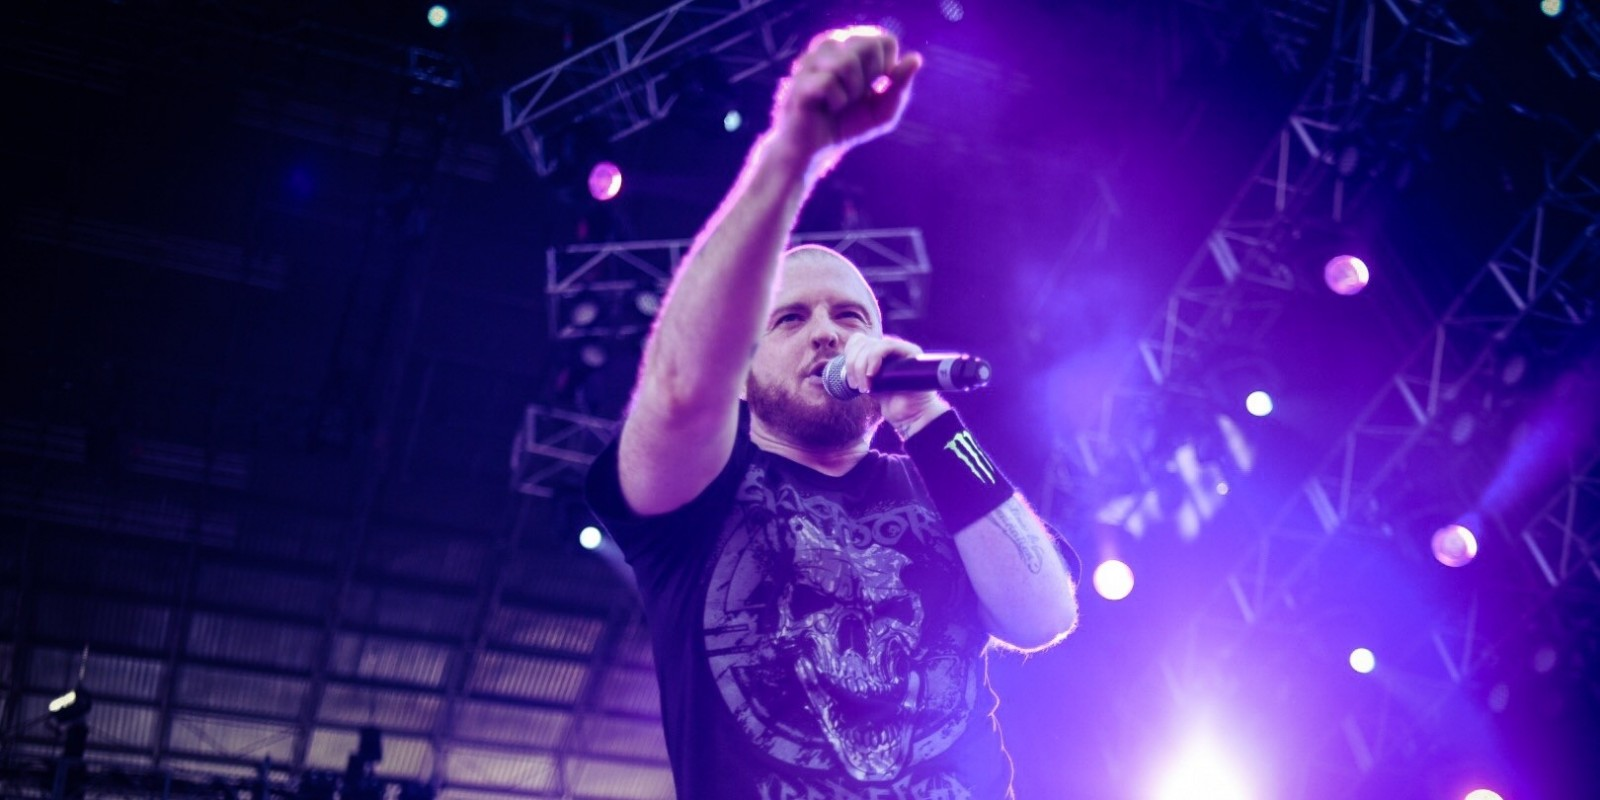 HateBreed live at Resurrection Fest